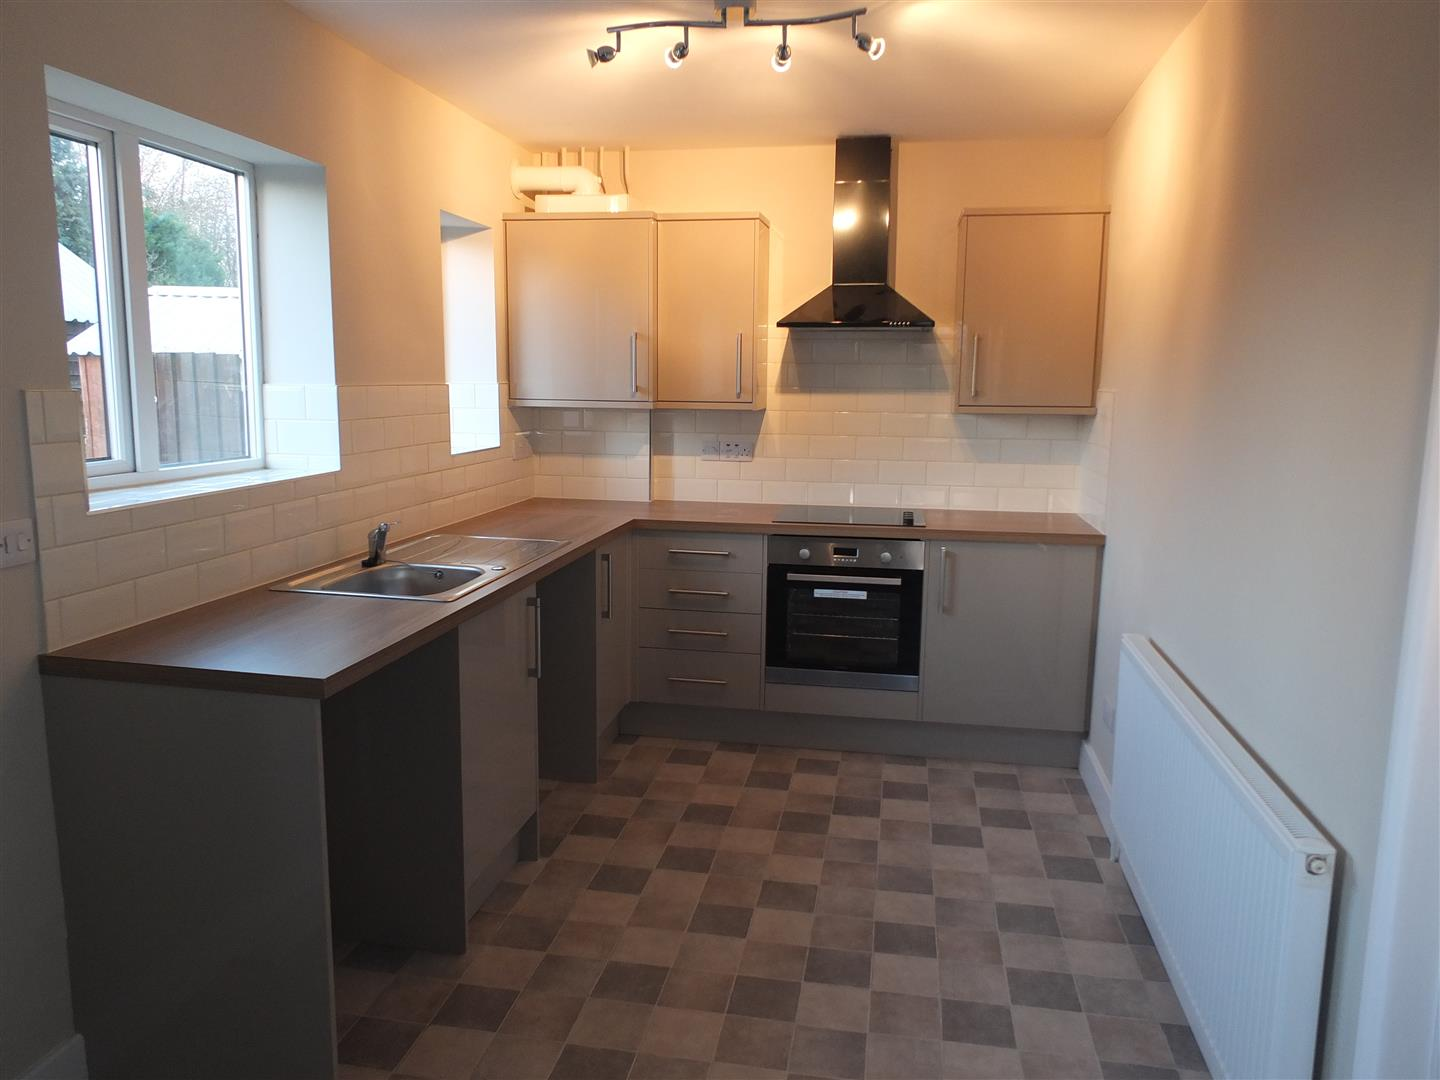 3 bed semi-detached house to rent in Long Sutton Spalding, PE12 9BT 1